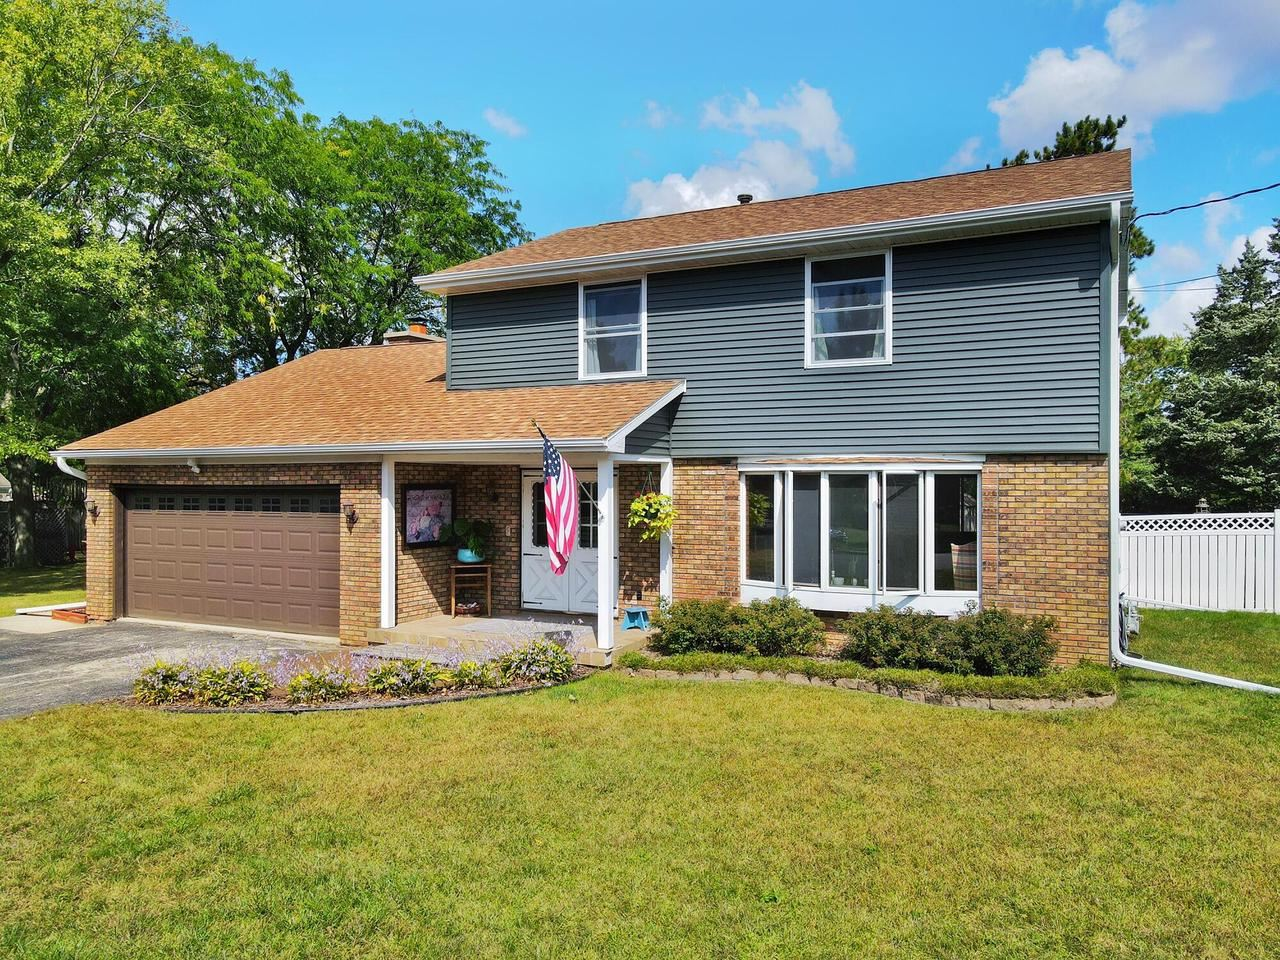 13 Krause Ave, Fort Atkinson, WI 53538 - #: 377329